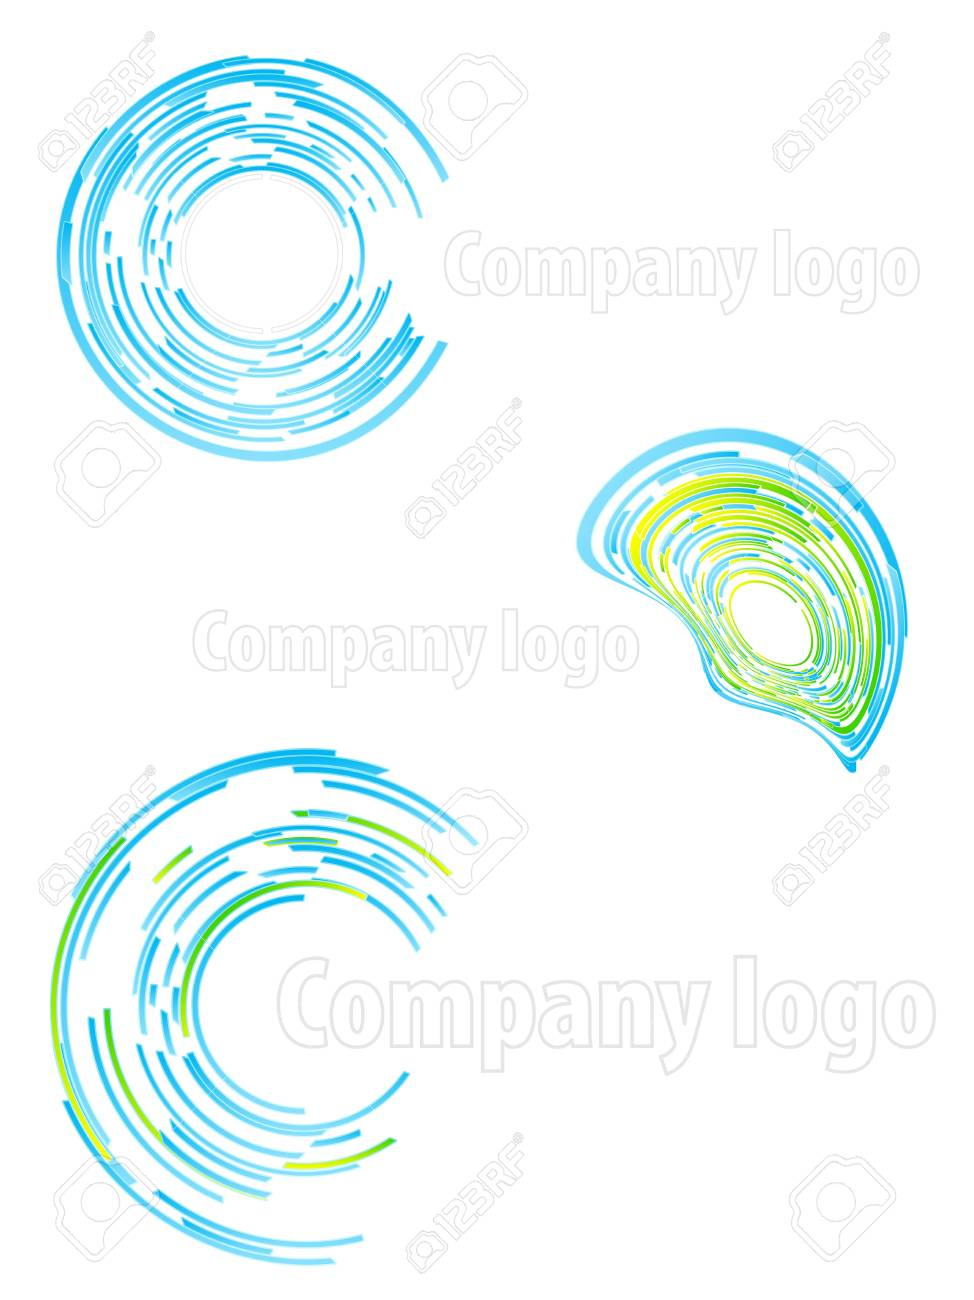 Vector illustration of three highly detailed abstract company logos. Stock Photo - 3256876